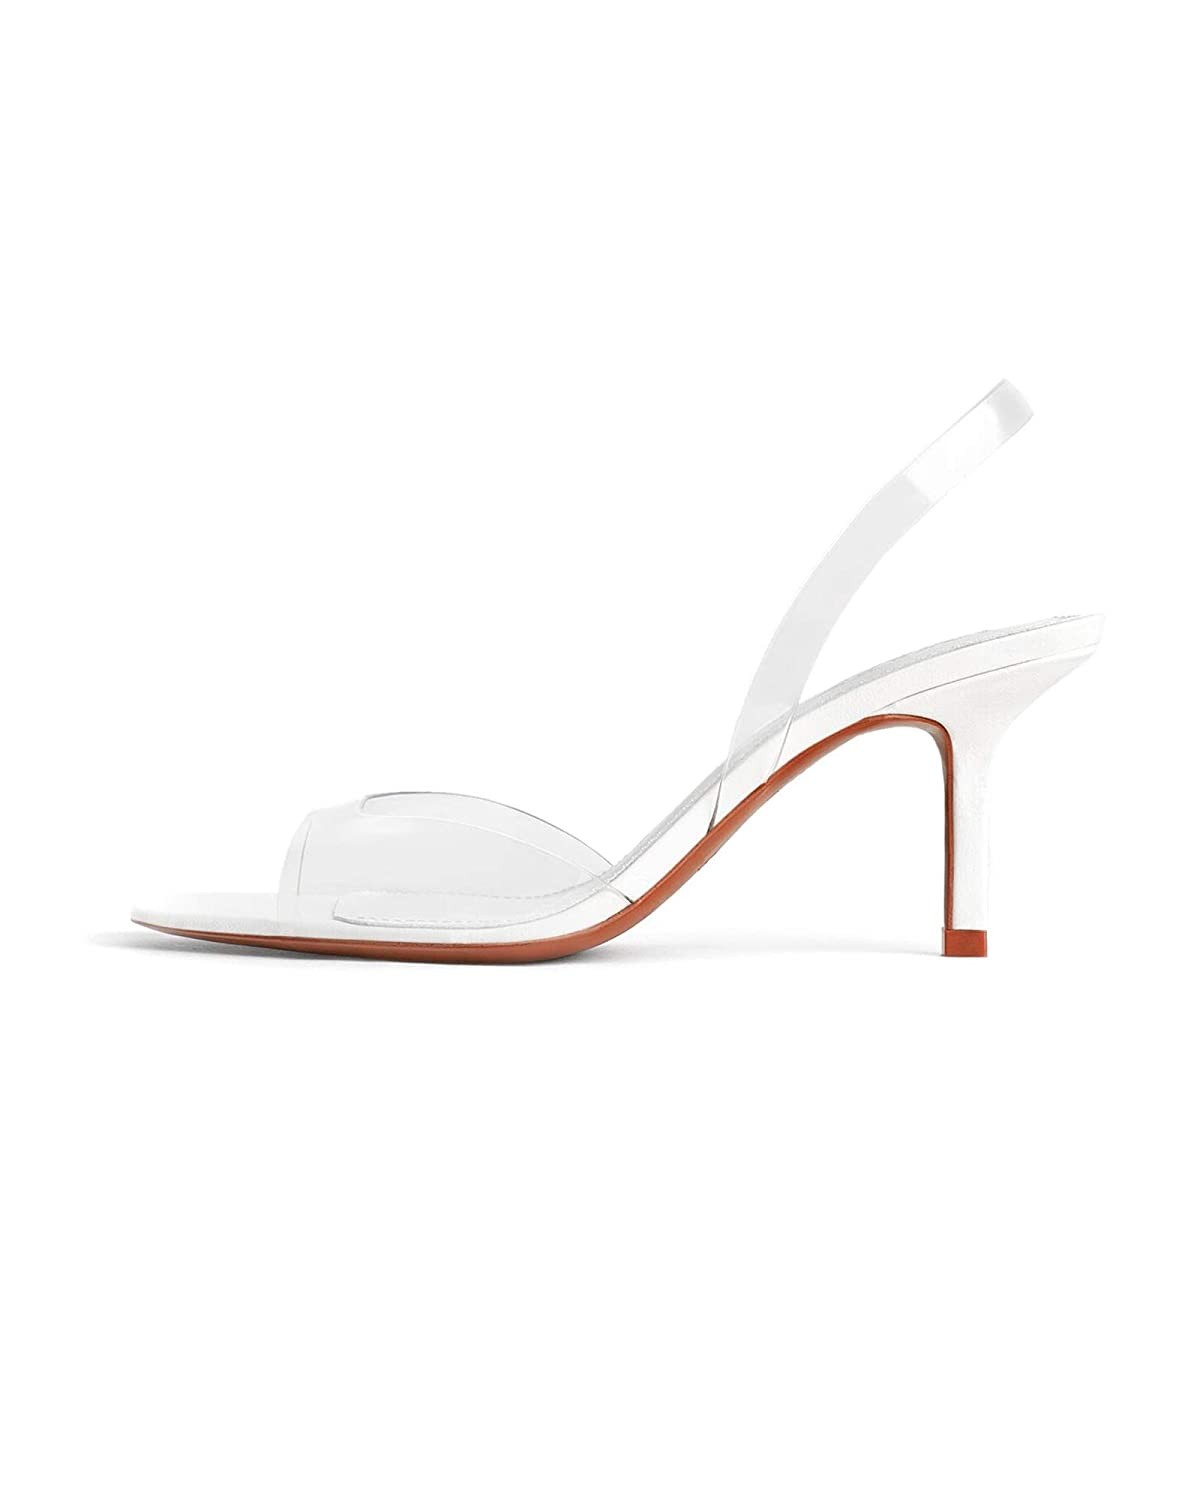 Zara Women's Vinyl high Heel Sandals 2337001: Amazon.co.uk